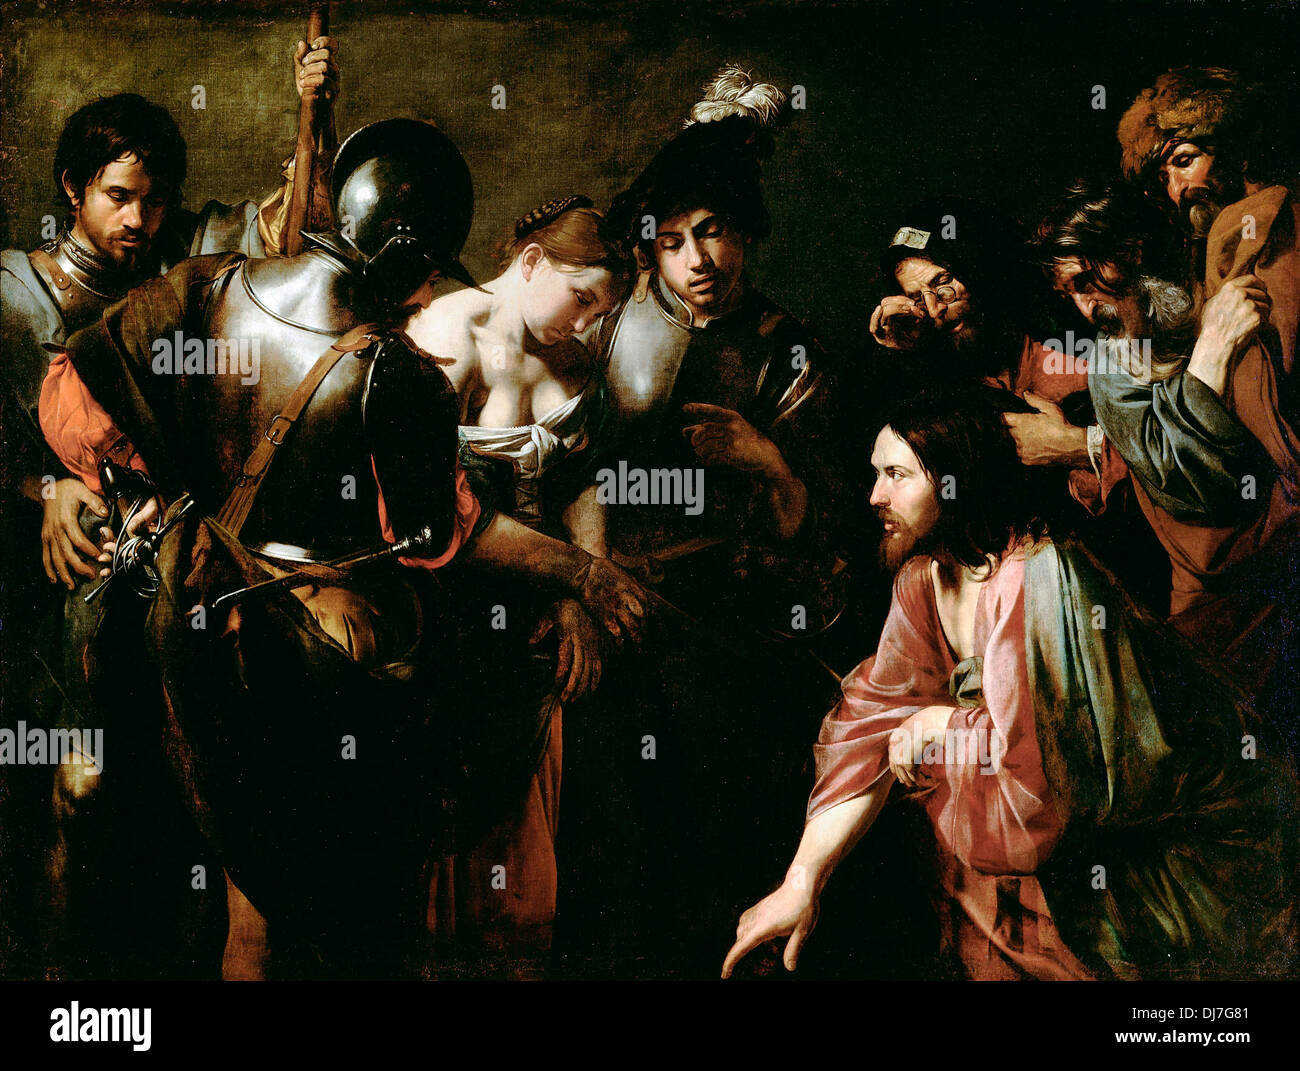 Valentin de Boulogne, Christ and the Adulteress. Circa 1620s. Oil on canvas. The J. Paul Getty Museum. - Stock Image